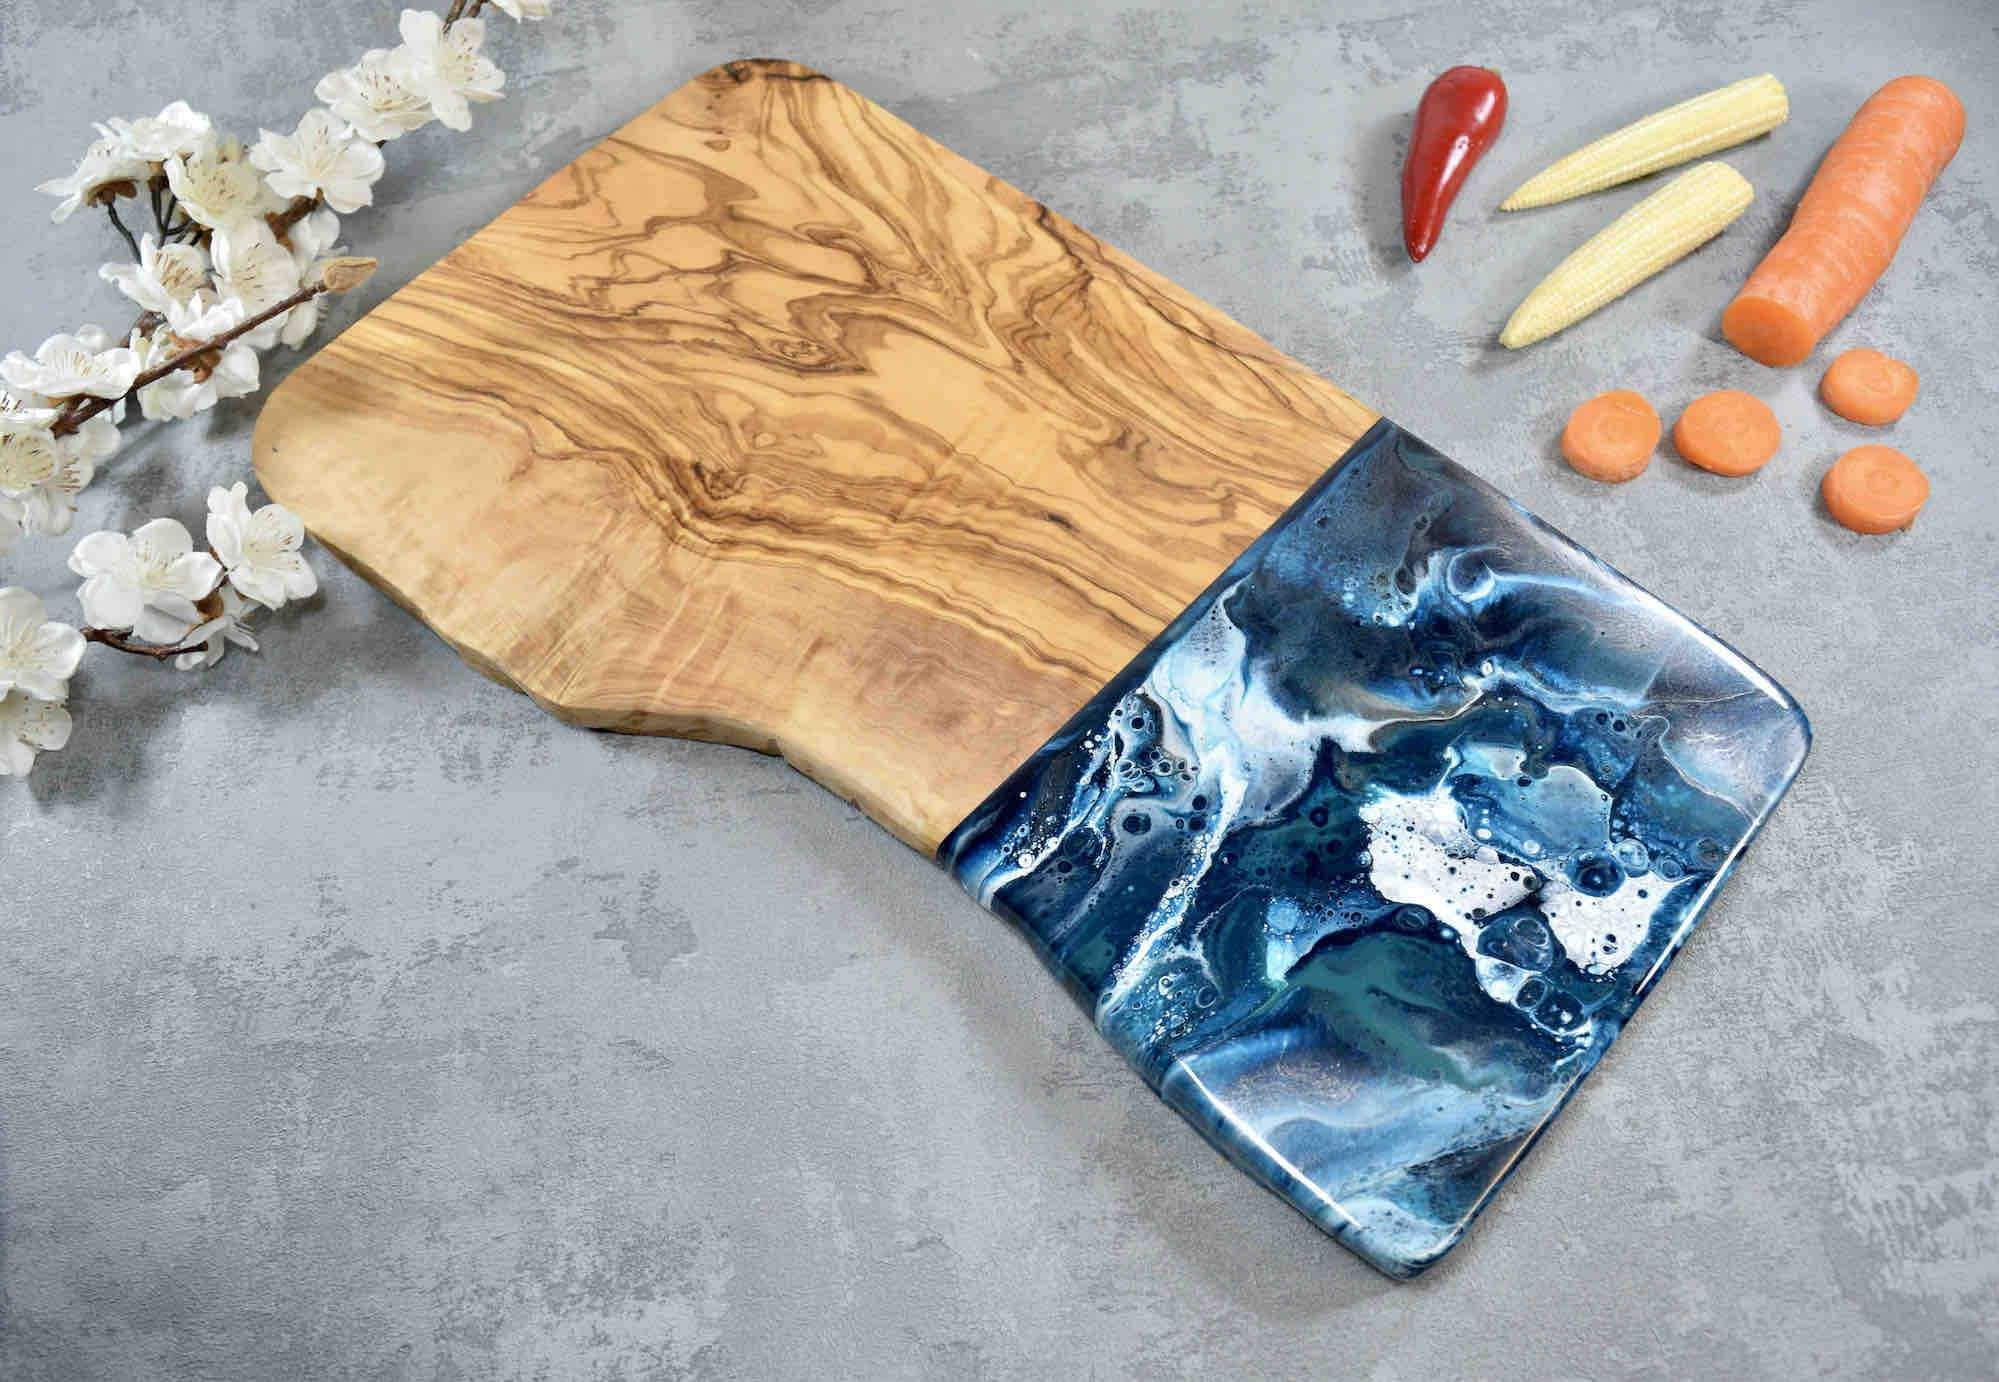 40cm Olive Wood Board with Blue Silver Resin Art